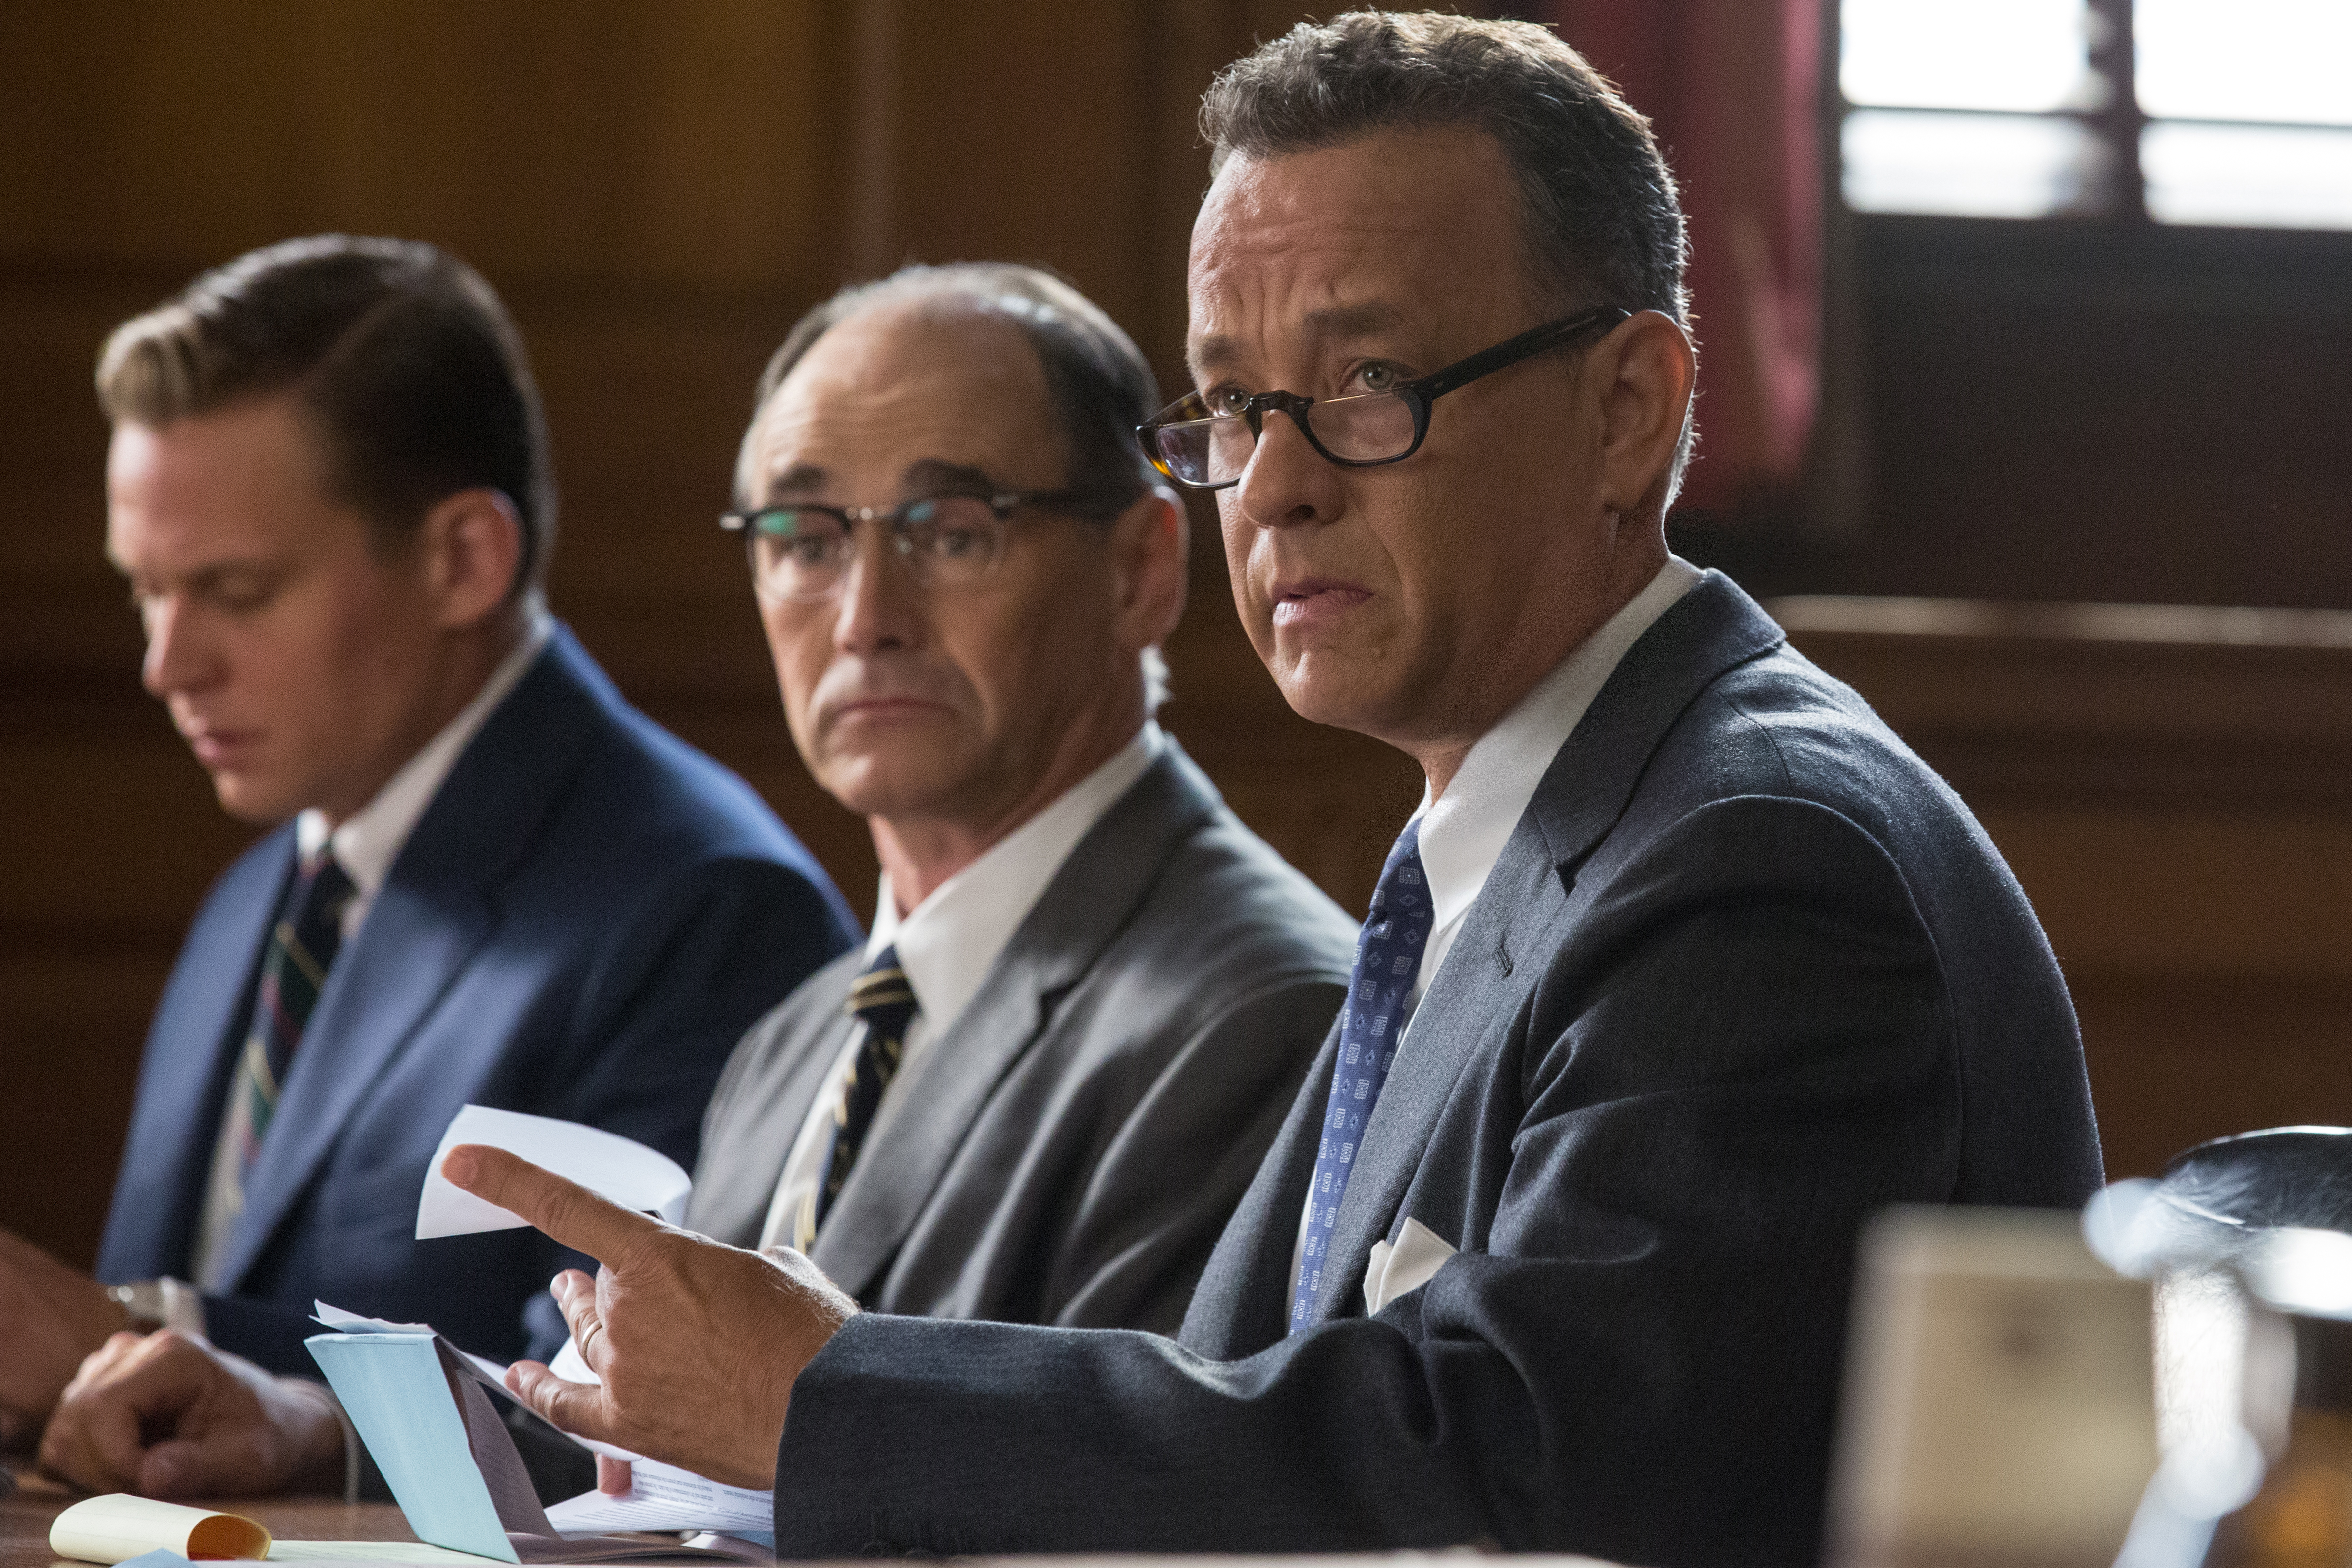 Tom Hanks as James Donovan, Mark Rylance as Rudolf Abel and Billy Magnusson as Douglas Forrester in BRIDGE OF SPIES, a dramatic thriller directed by Steven Spielberg.